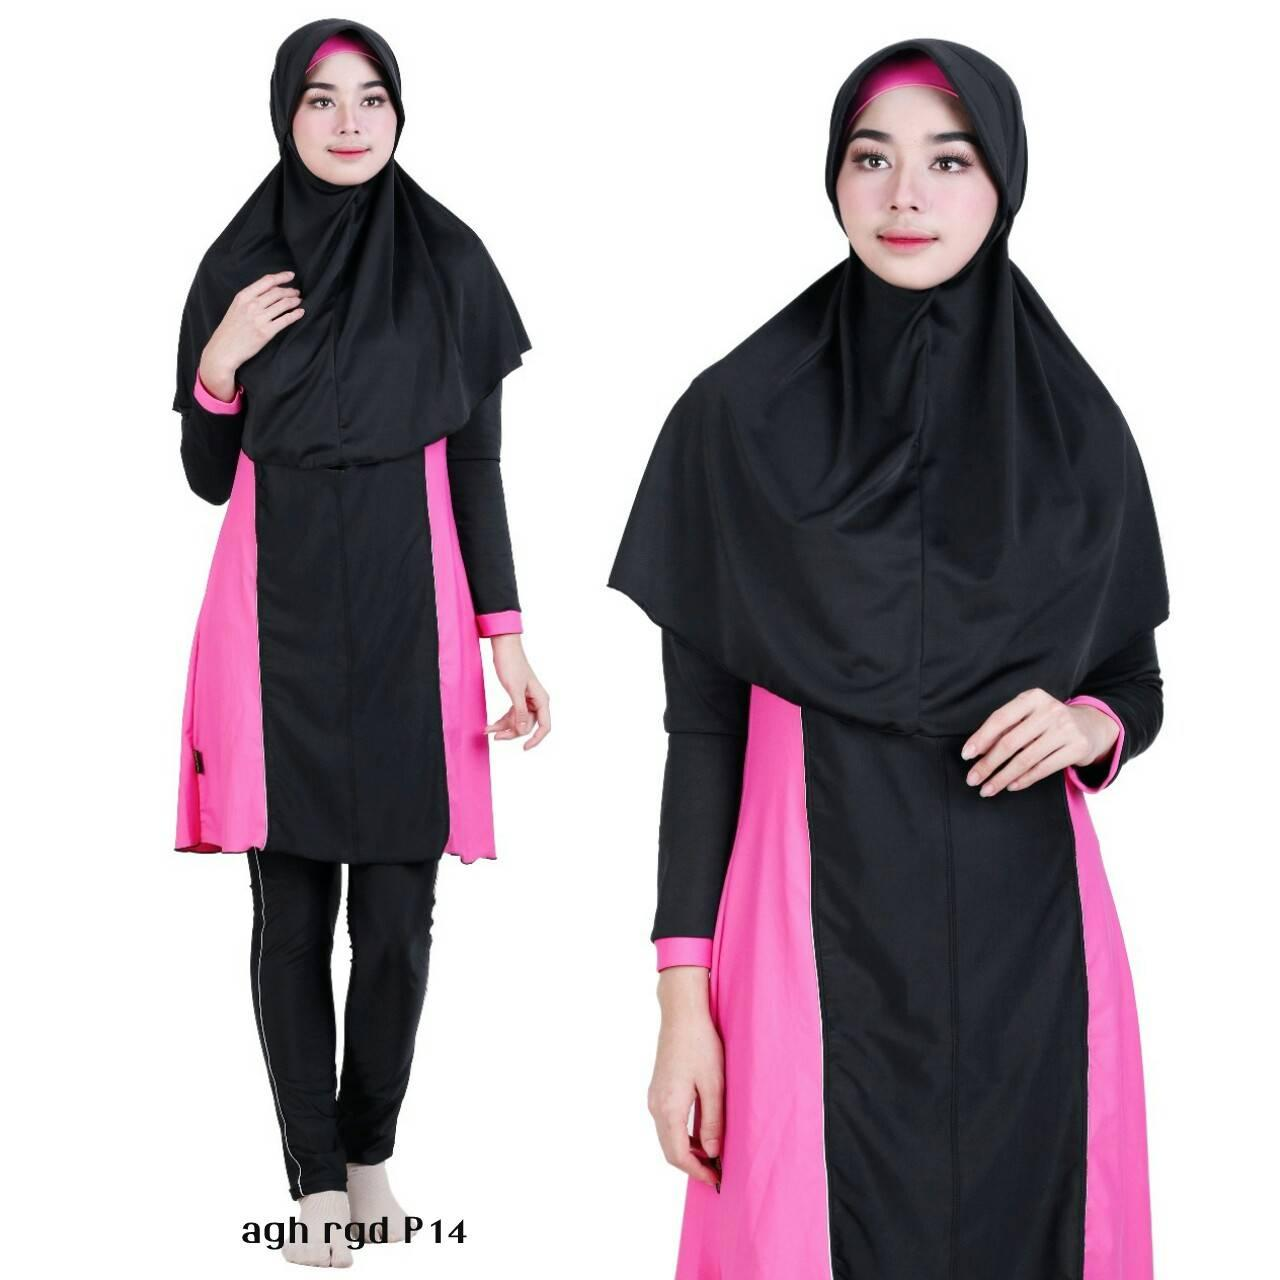 ... Baju Renang Muslimah Premium by Aghnisan Collection Size S - XL - 3 ...